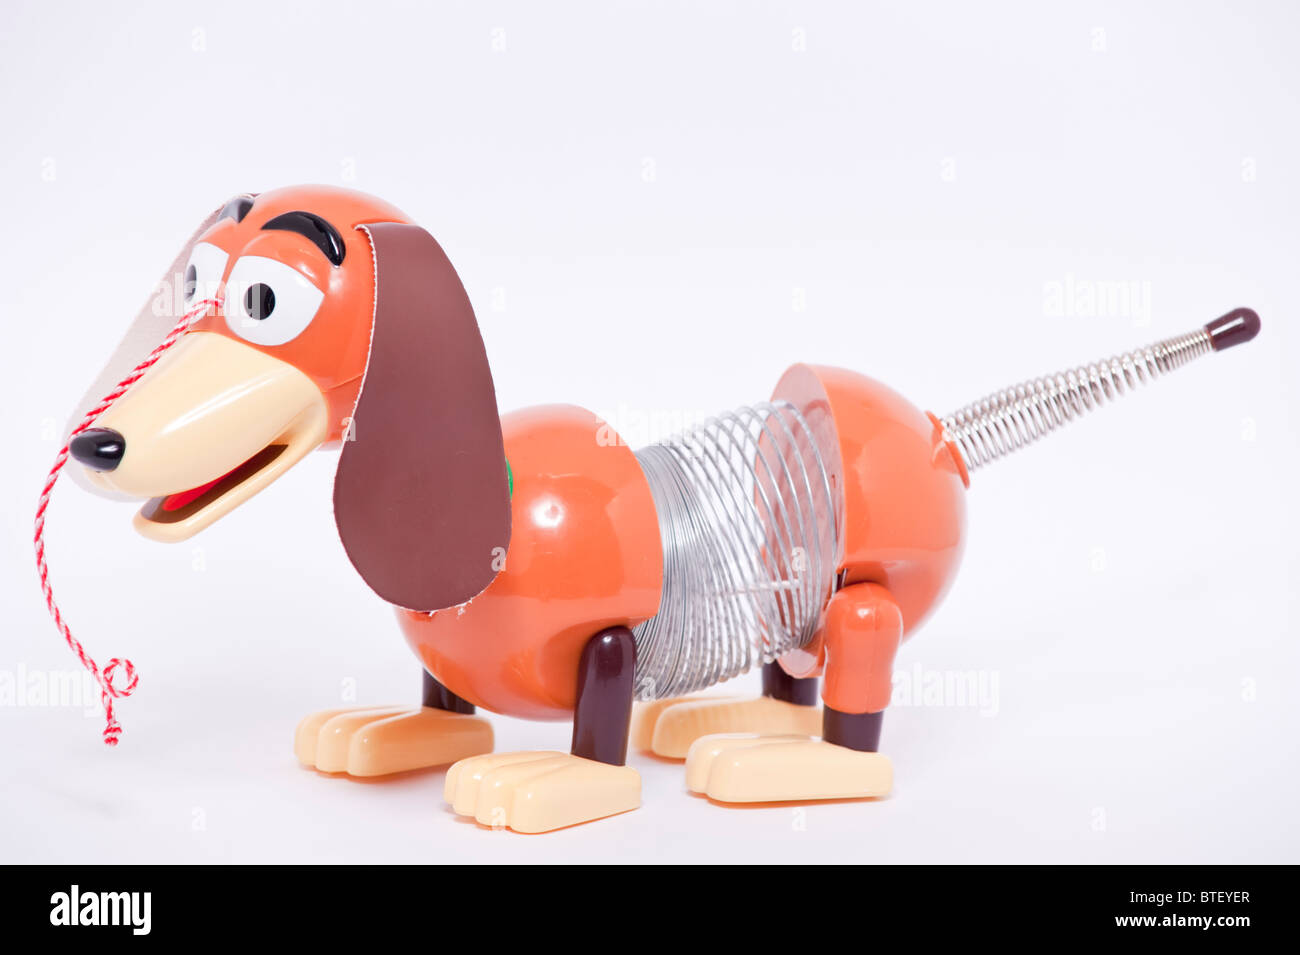 A close up photo of a childs toy Slinky dog character from the Toy Story films against a white background - Stock Image